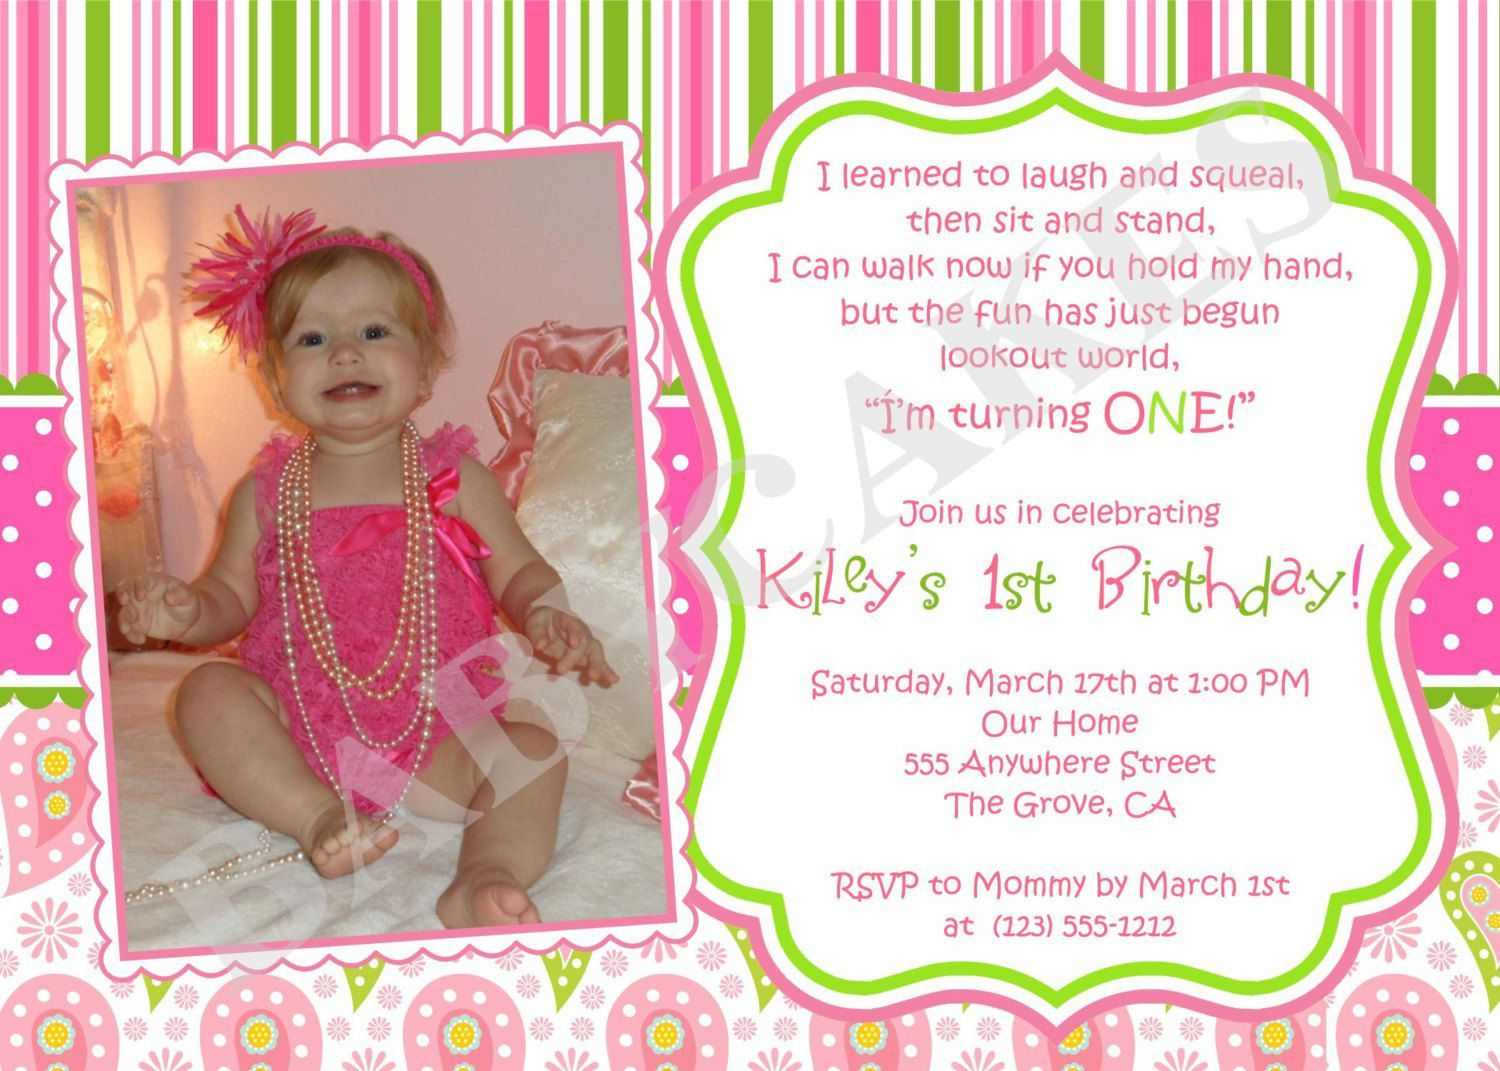 000 Fantastic 1st Birthday Invitation Template High Resolution  Background Design Blank For Girl First Baby Boy Free Download IndianFull